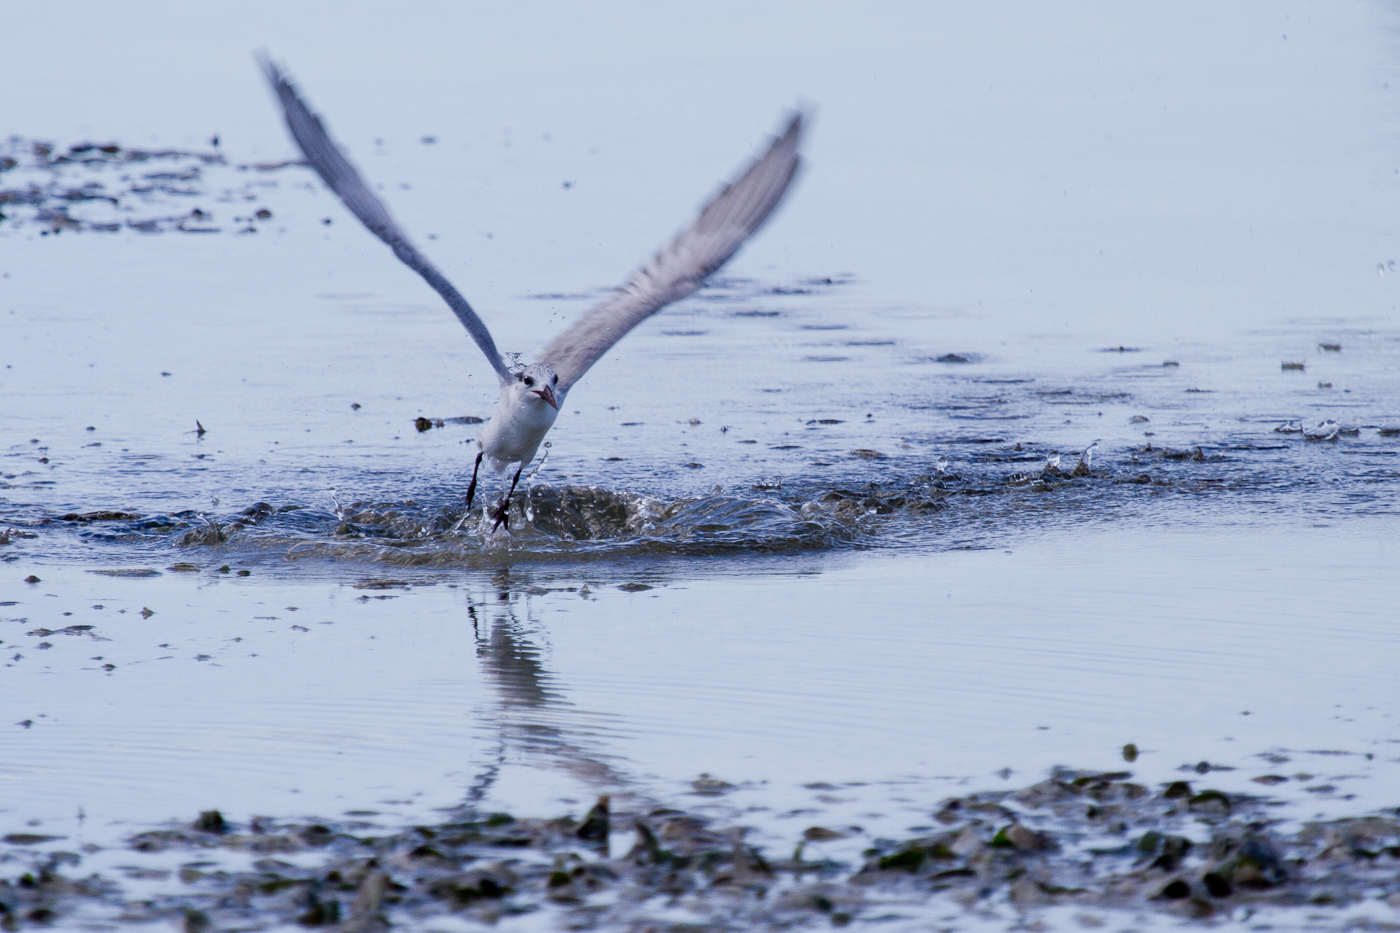 Common Tern fishing, Olango Island